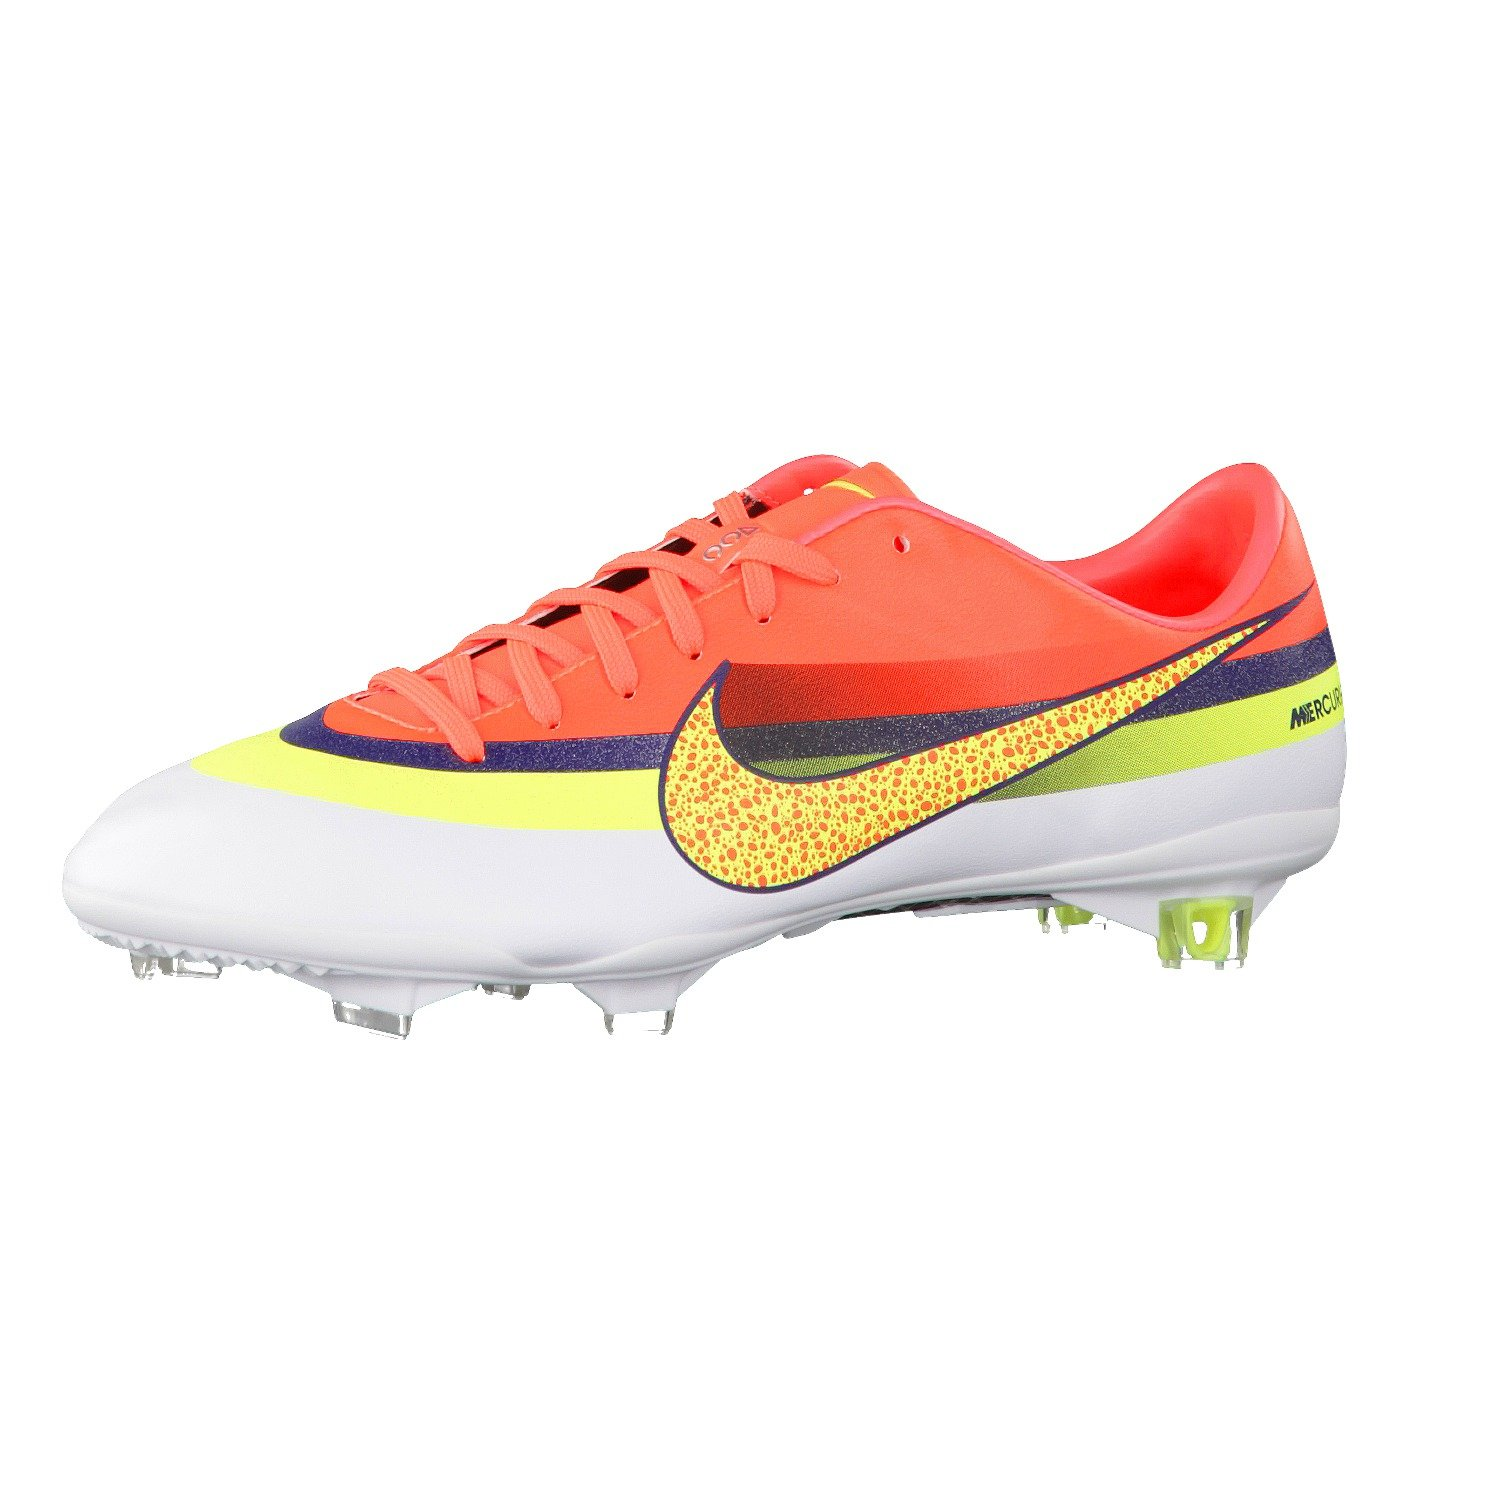 factory price 0073f c18ad Nike Mercurial Vapor IX CR7 FG Football Boots White Volt Crimson,  multicolored  Amazon.co.uk  Sports   Outdoors